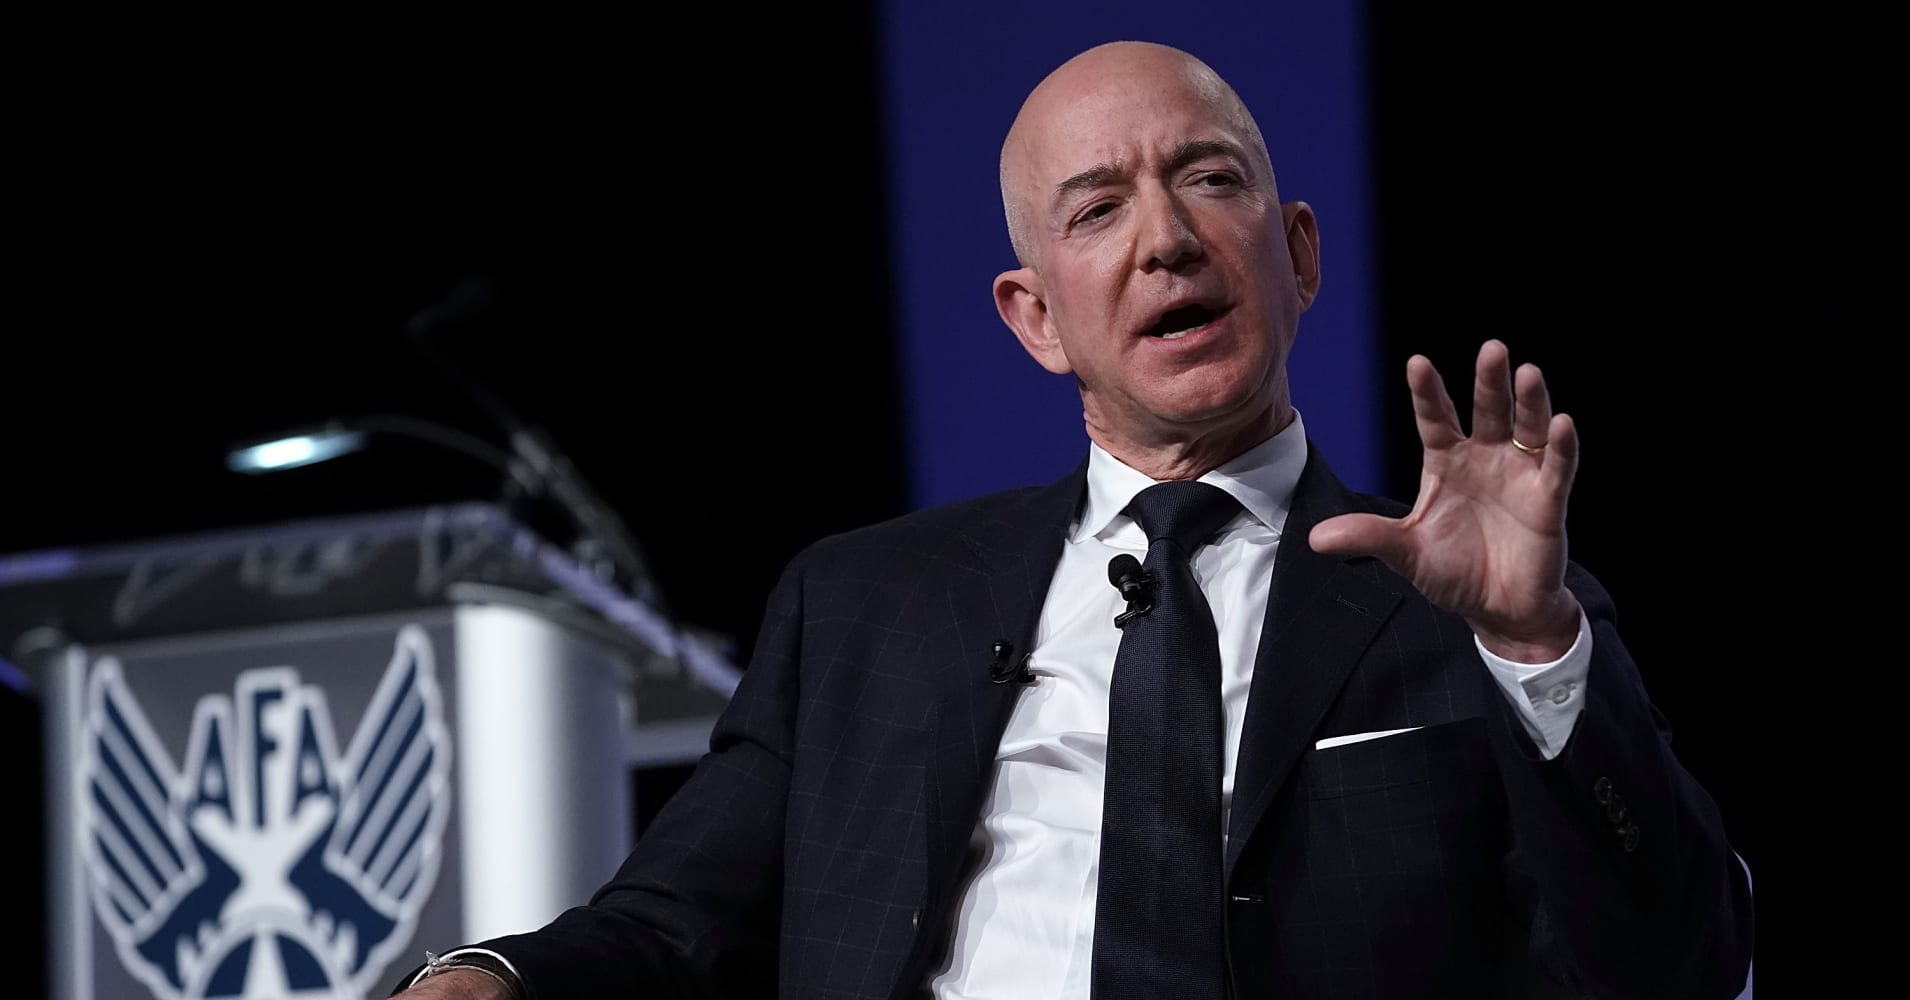 Jeff Bezos told employees last year that other companies shouldn't be so afraid of Amazon — some rivals are proving him right